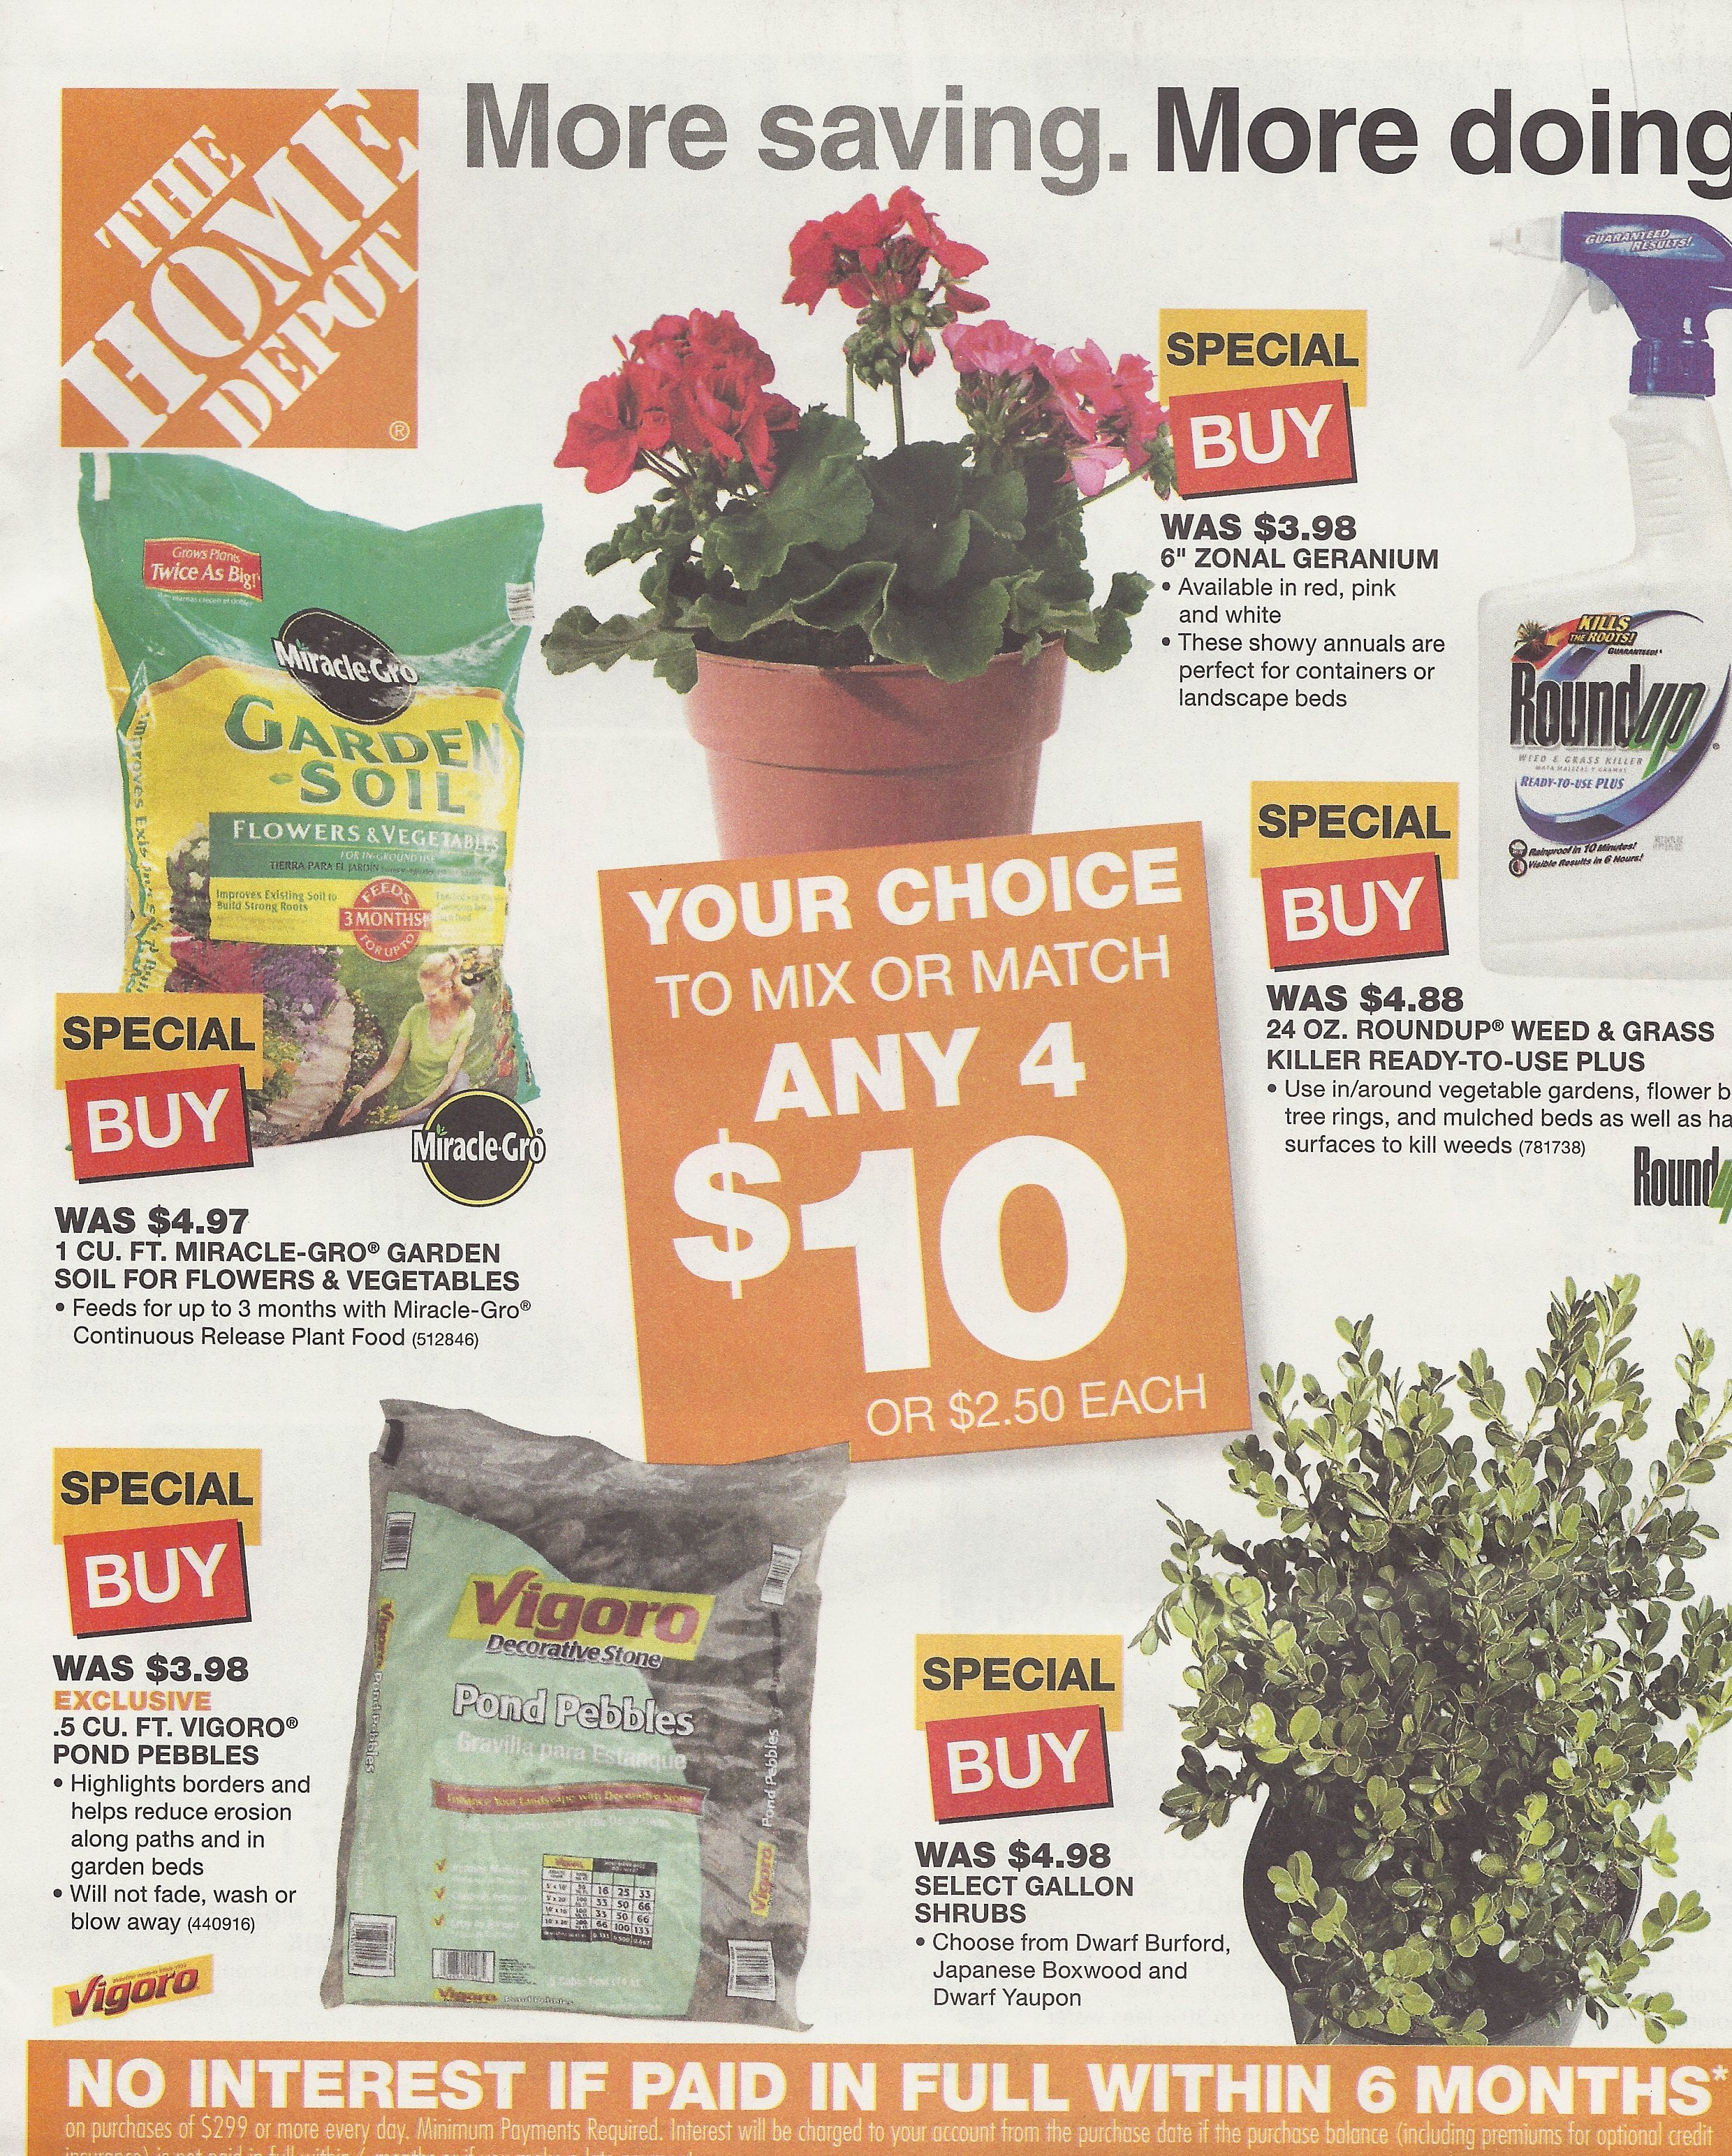 Home Depot 4/$10 Garden Sale, Roundup, Soil, Plants Starts 2/24